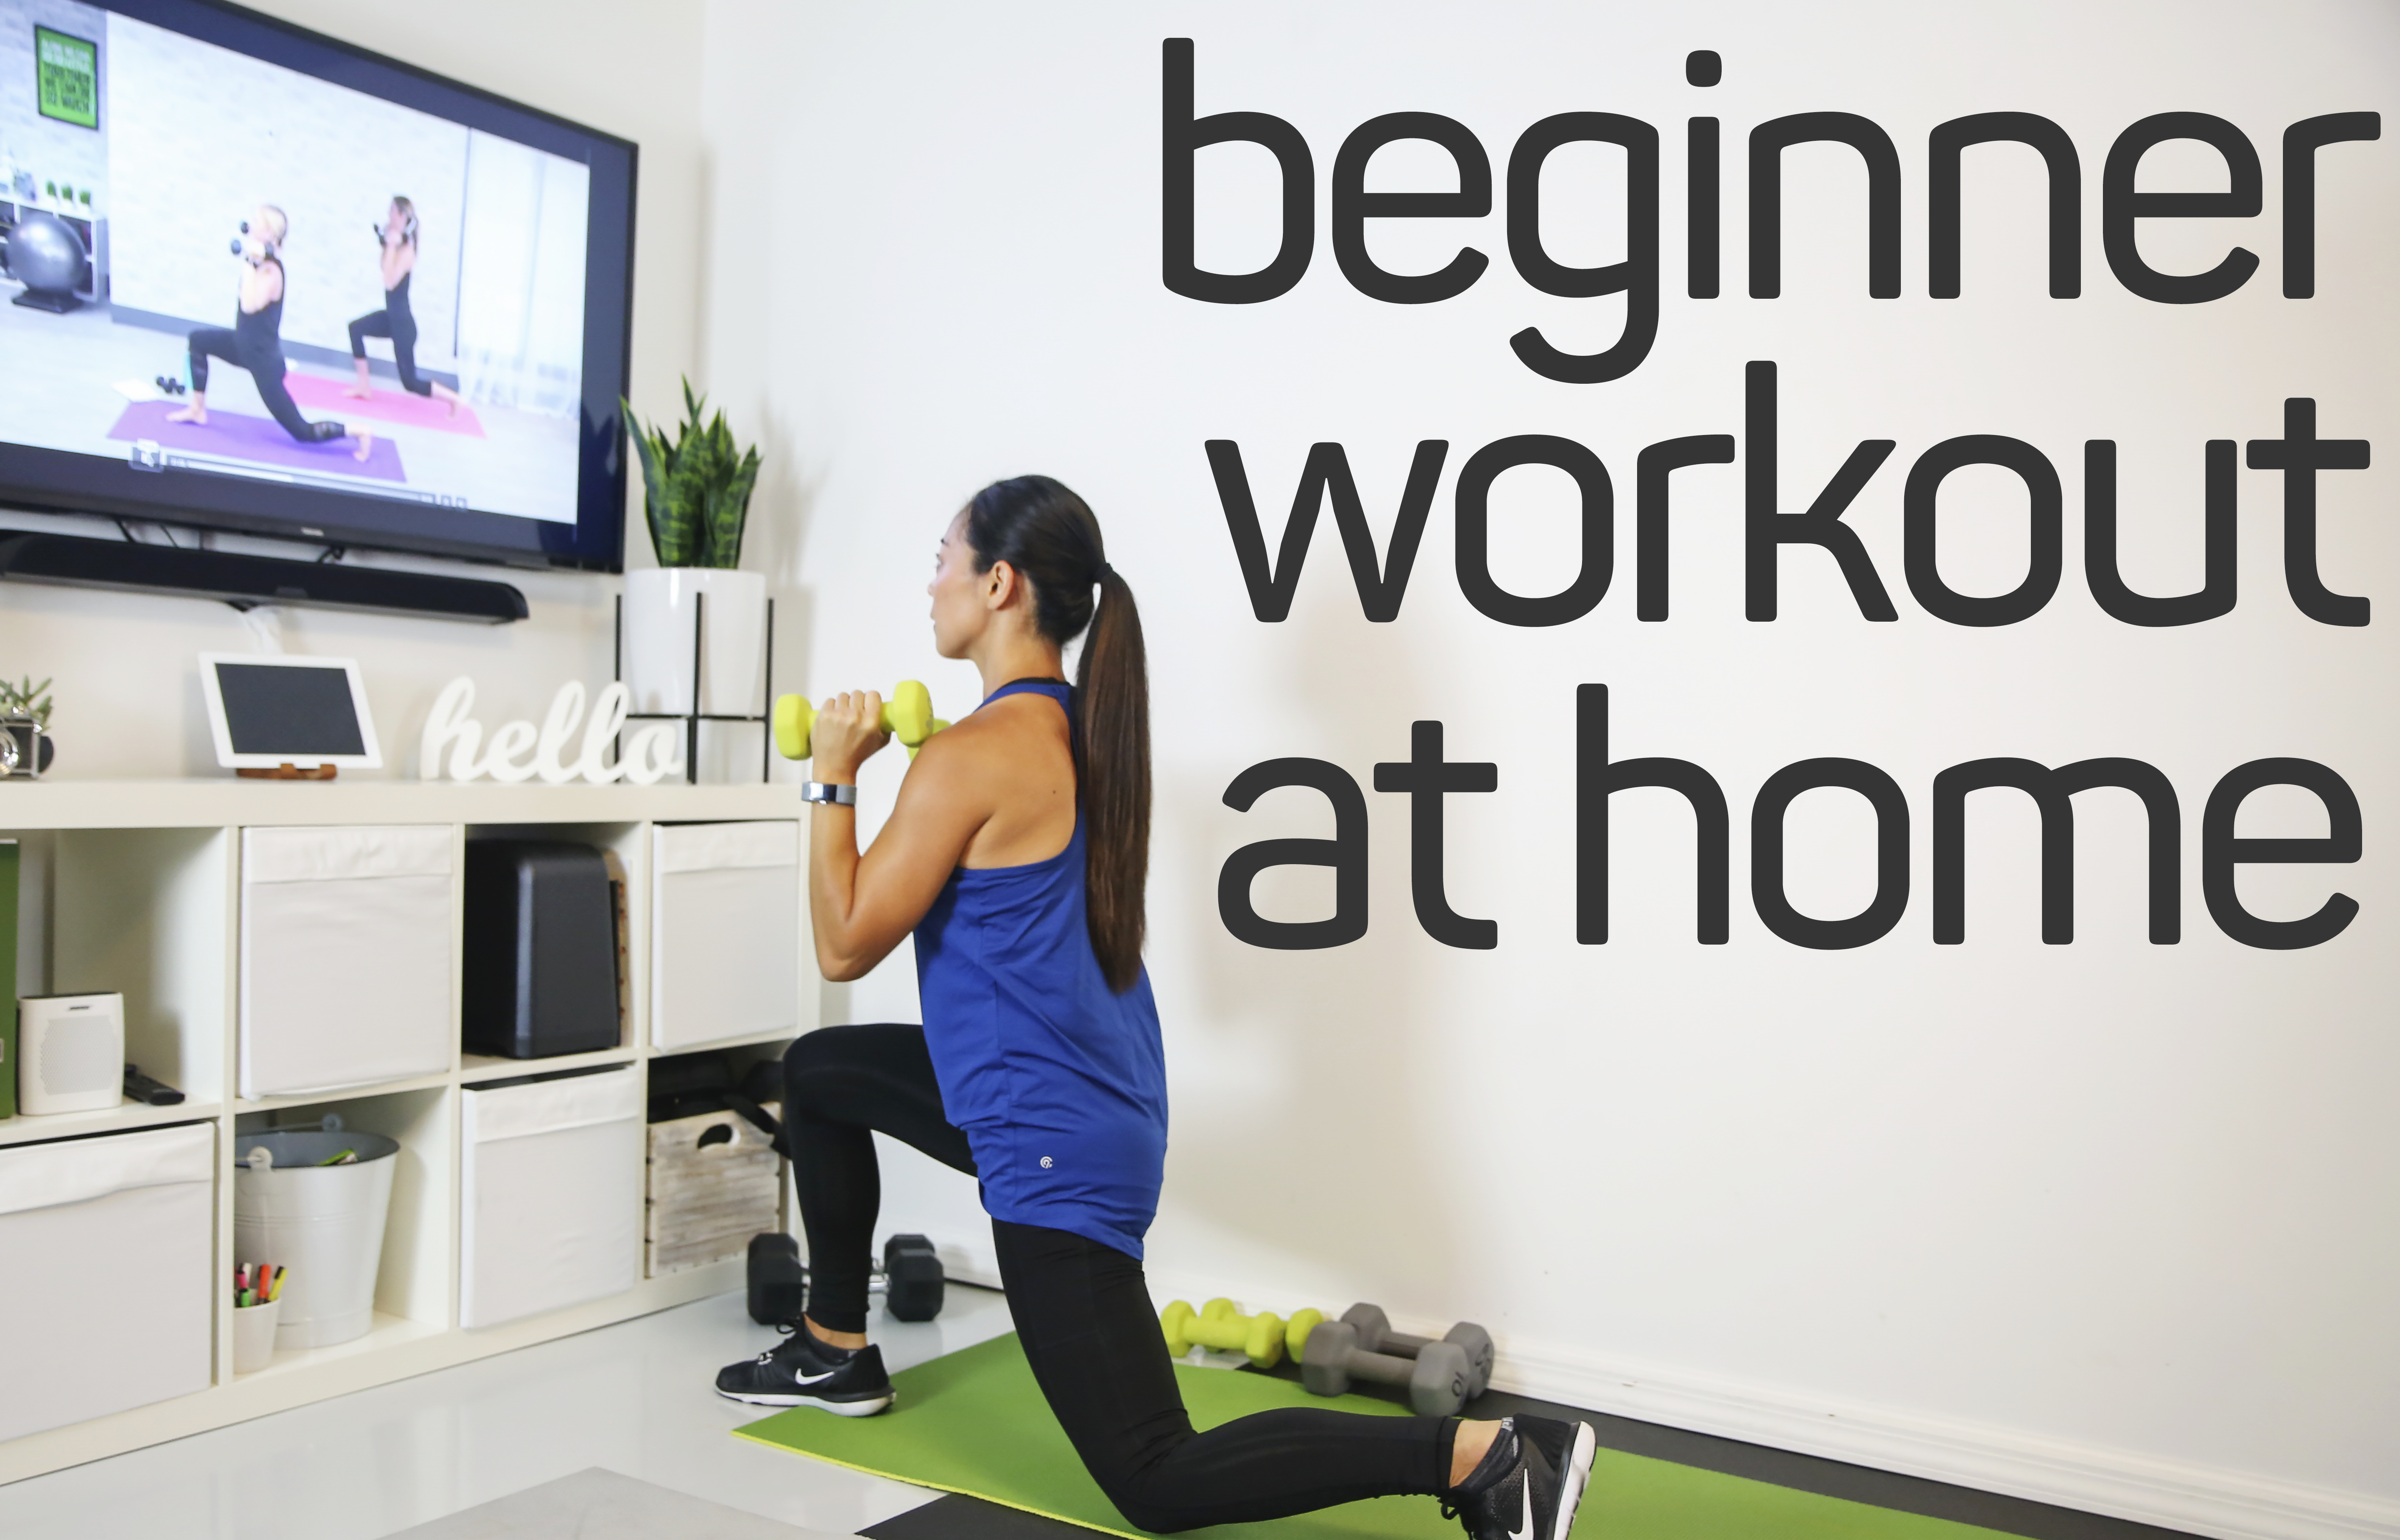 How To Start A Beginner Workout At Home